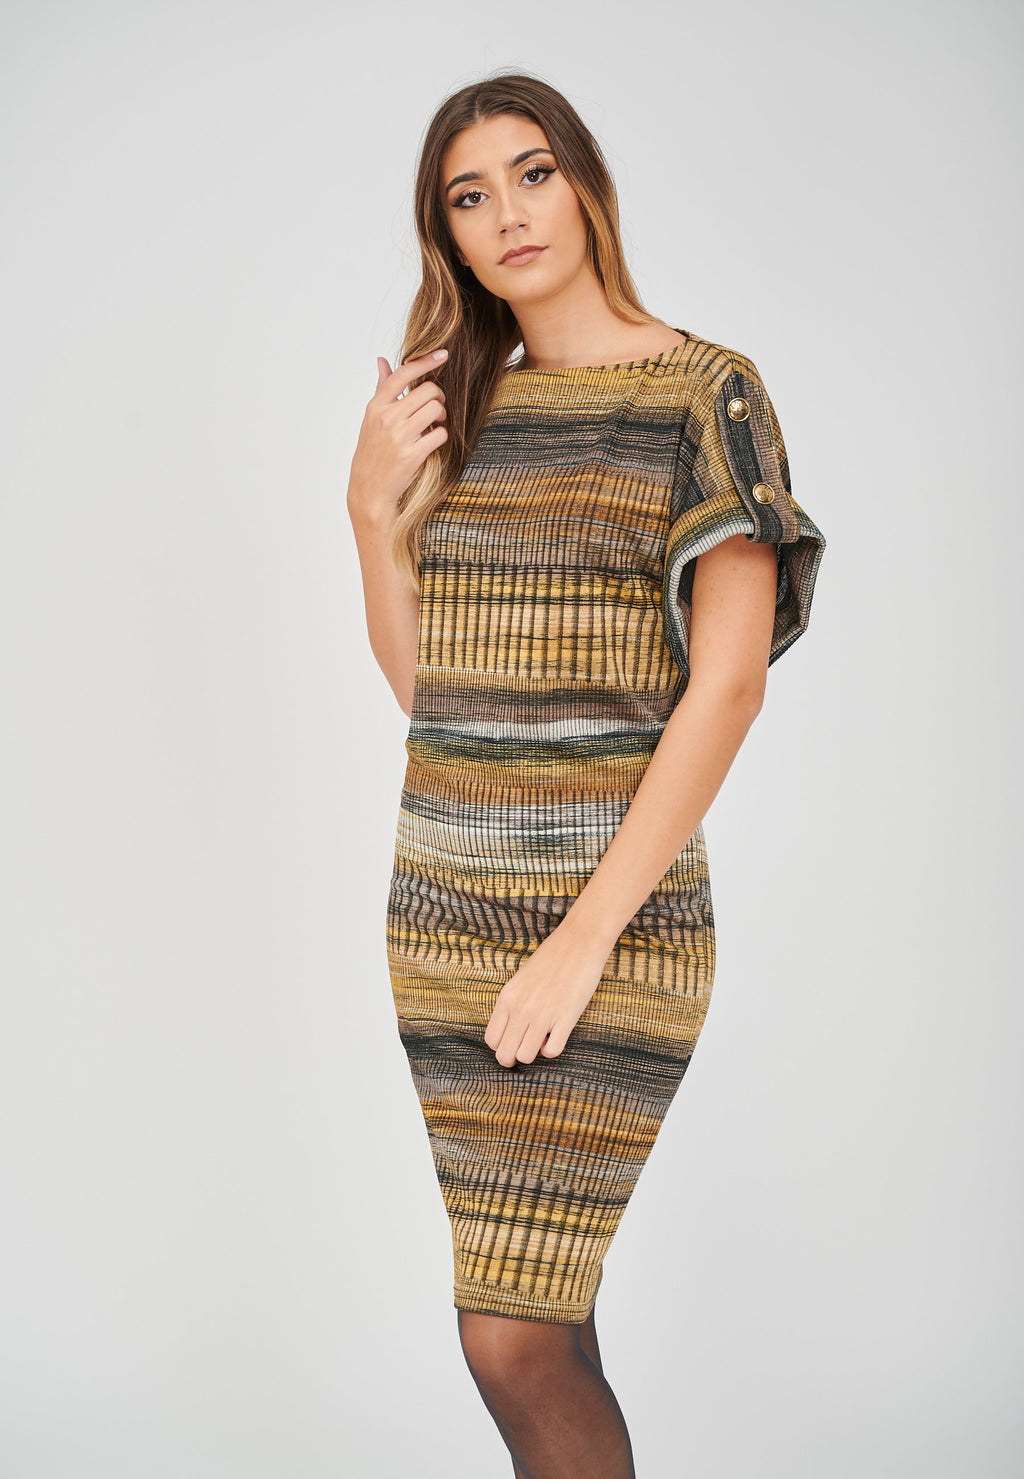 The Zoe Stripe Print Jacquard Dress Casual Styling